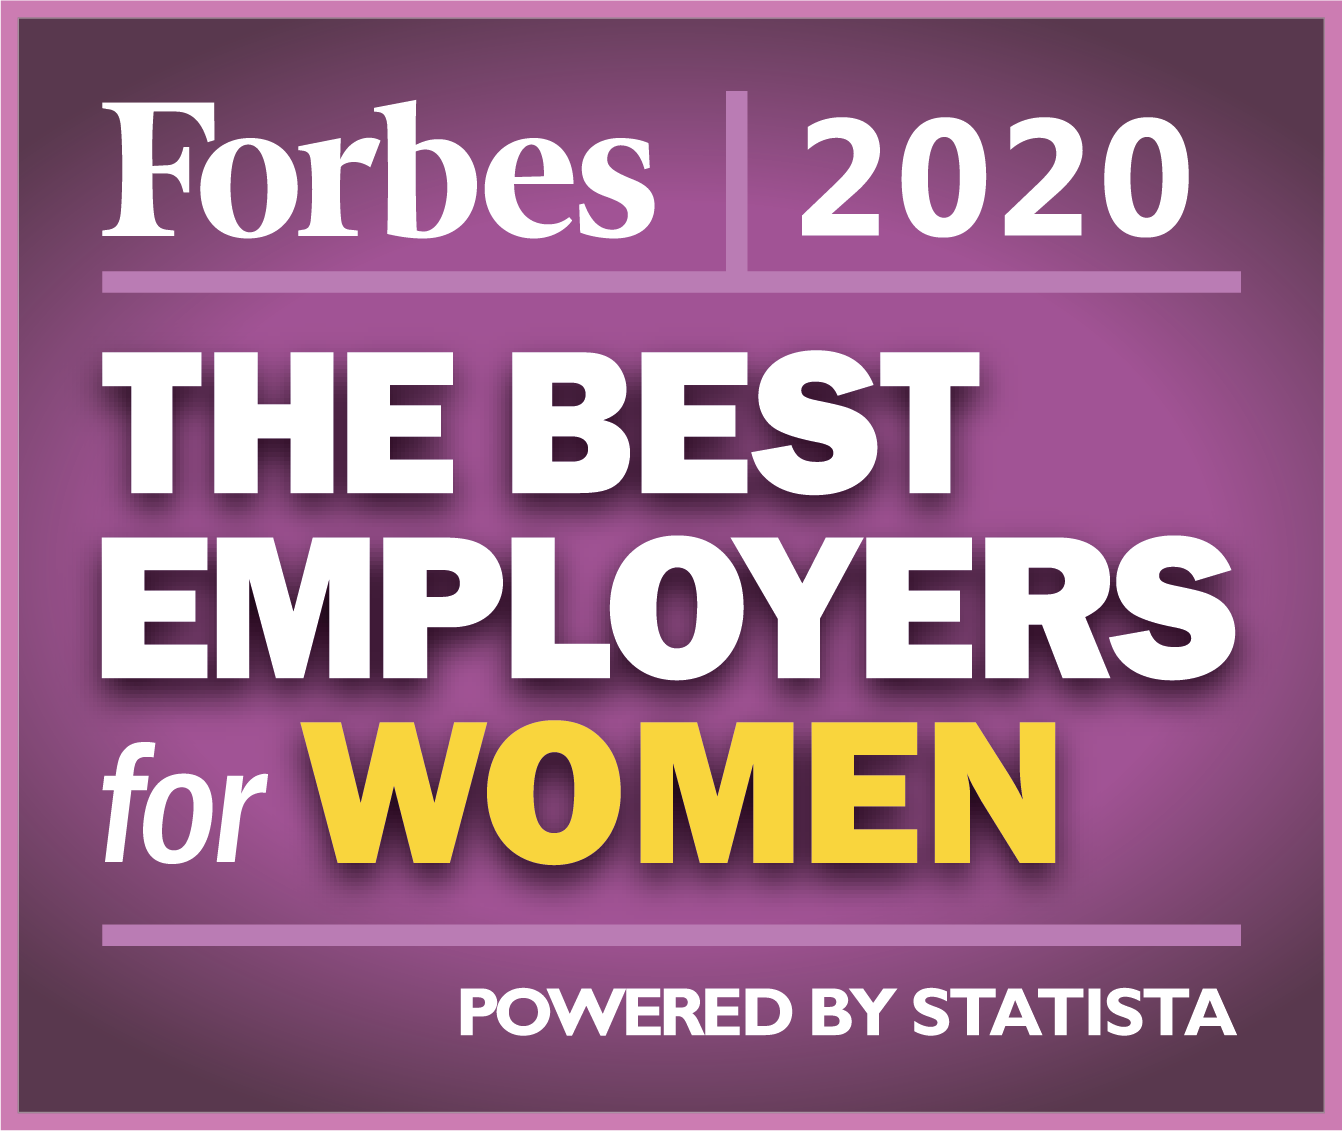 2020 Forbes Best Employers for Women